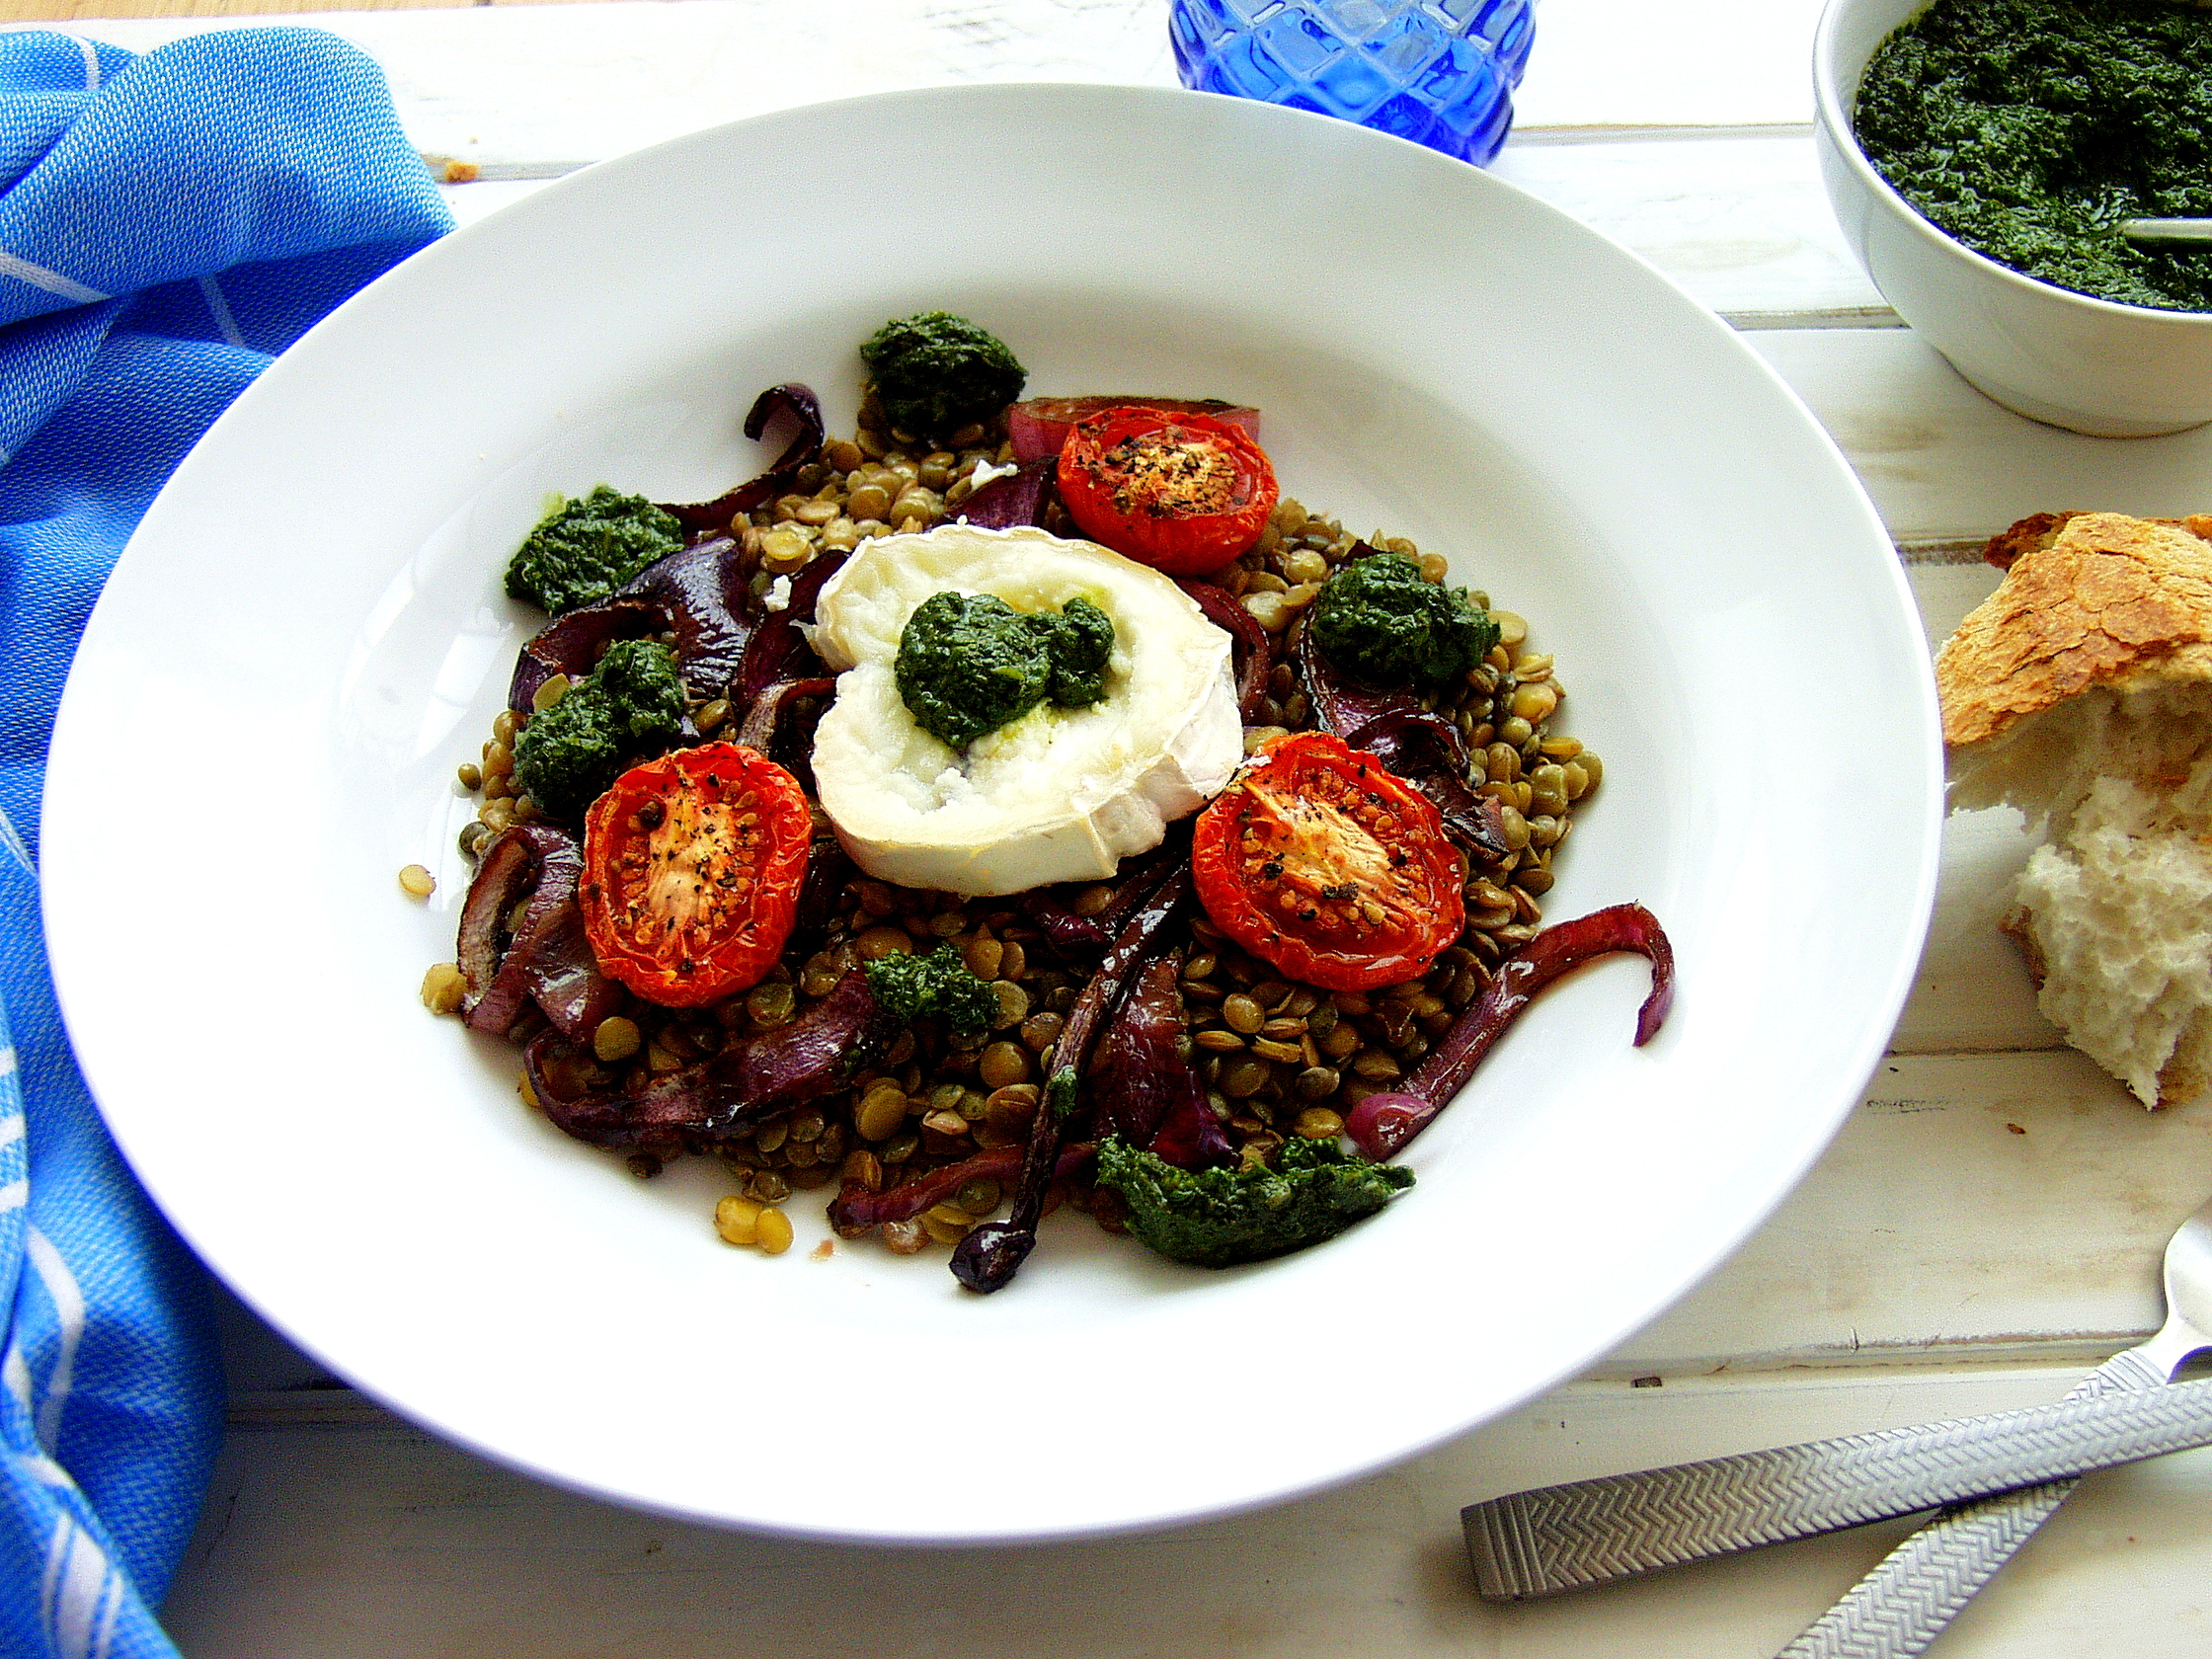 Warm Lentil Salad With Goat Cheese Recipes — Dishmaps